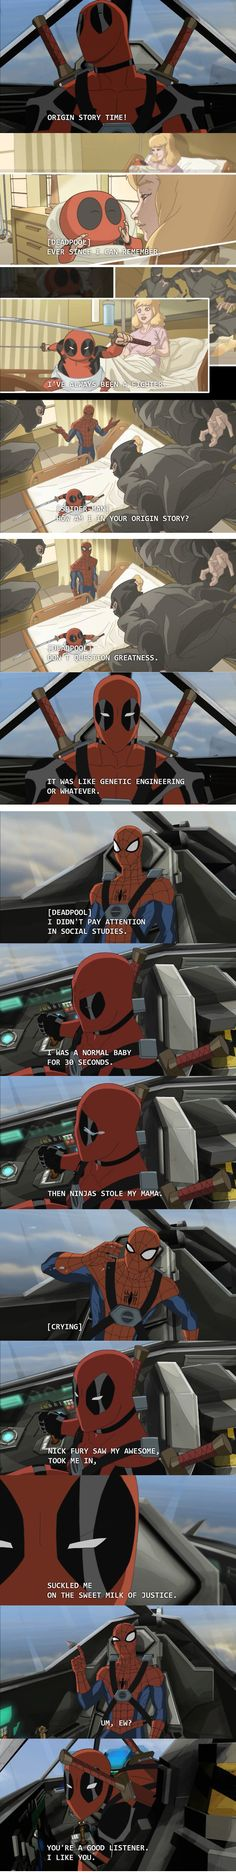 deadpool origins